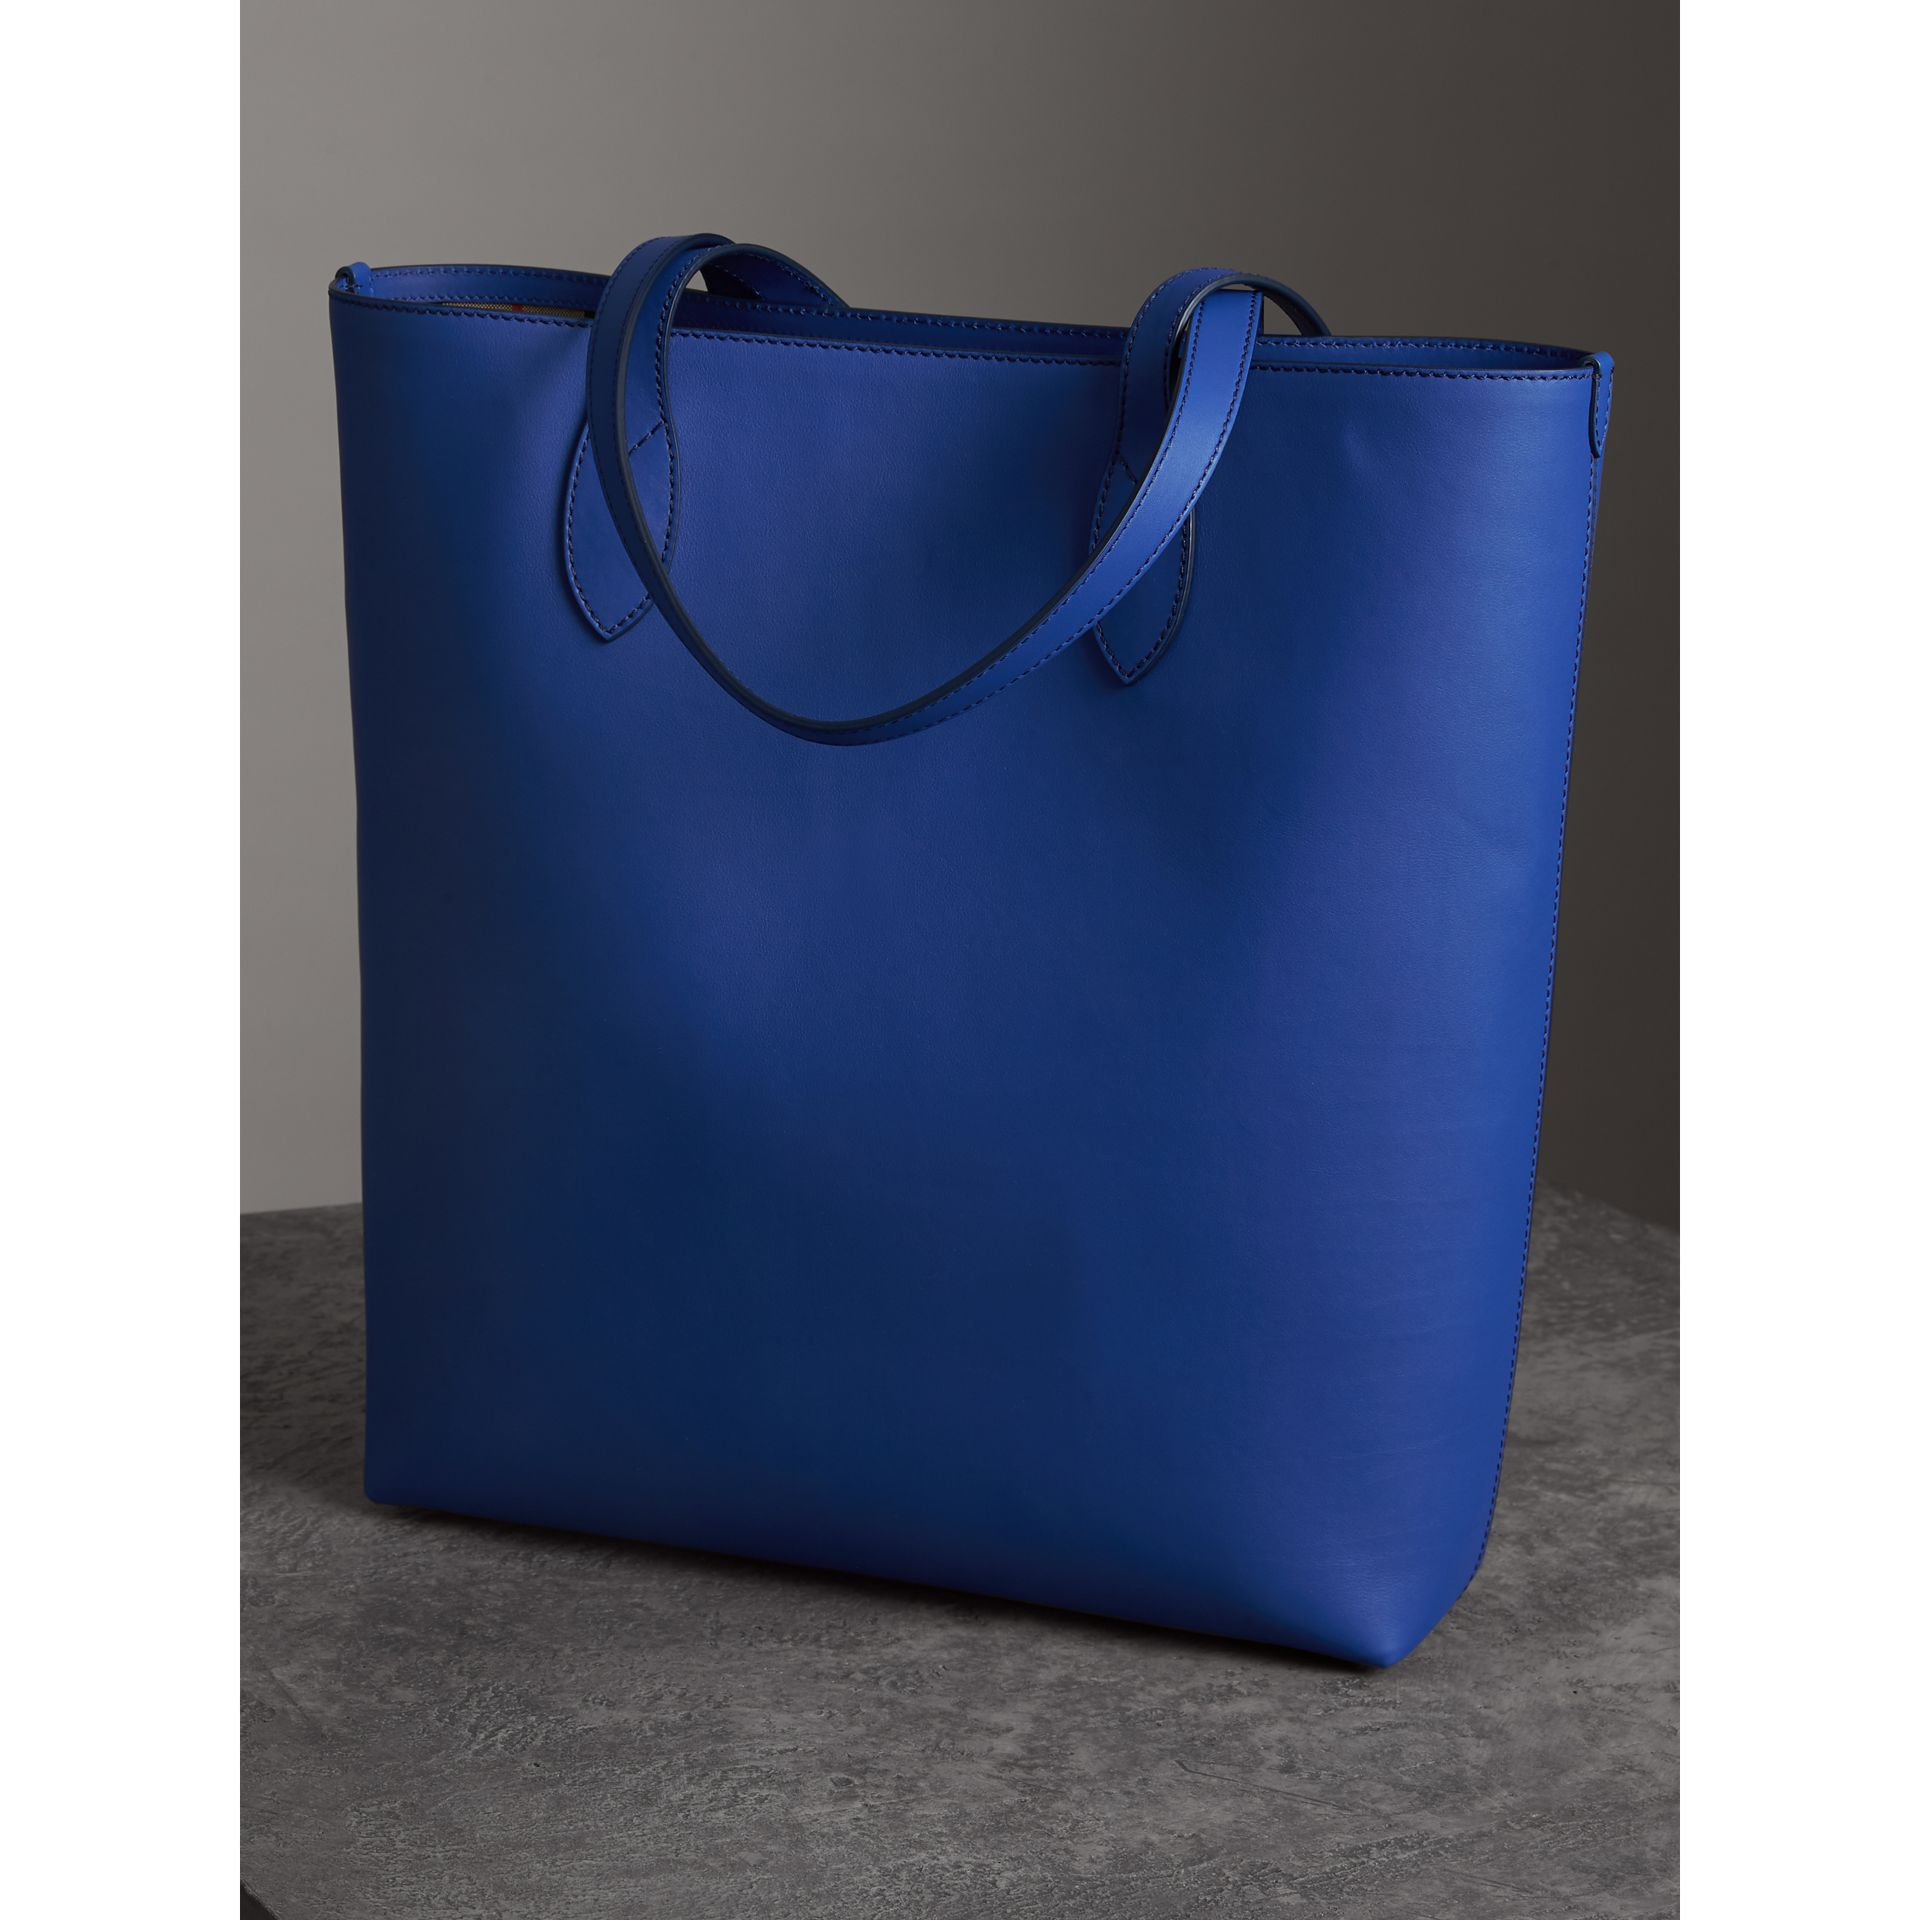 Graffiti Print Bonded Leather Tote in Denim Blue | Burberry - gallery image 2